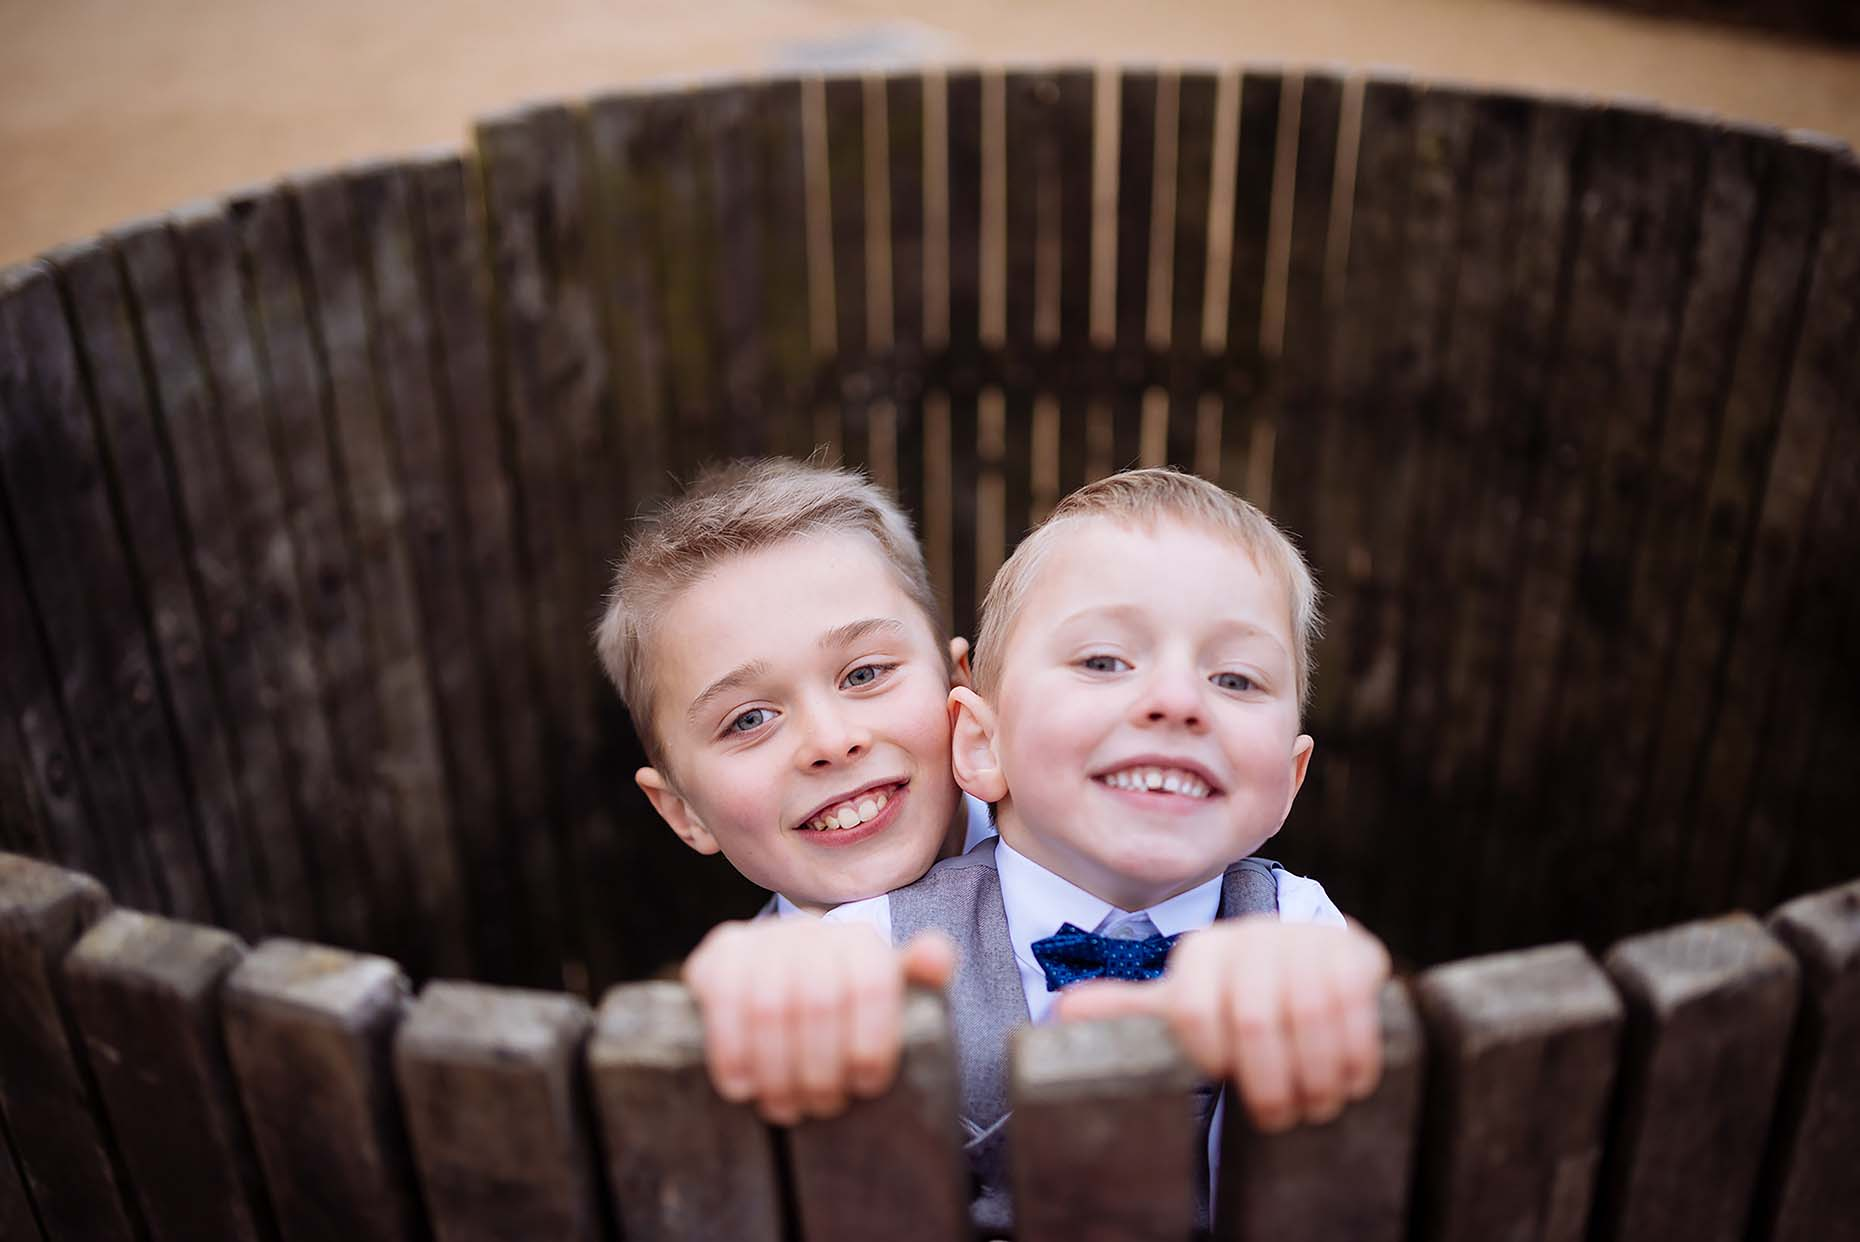 funny-wedding-pictures-two-children-in-barrel-reportage-11